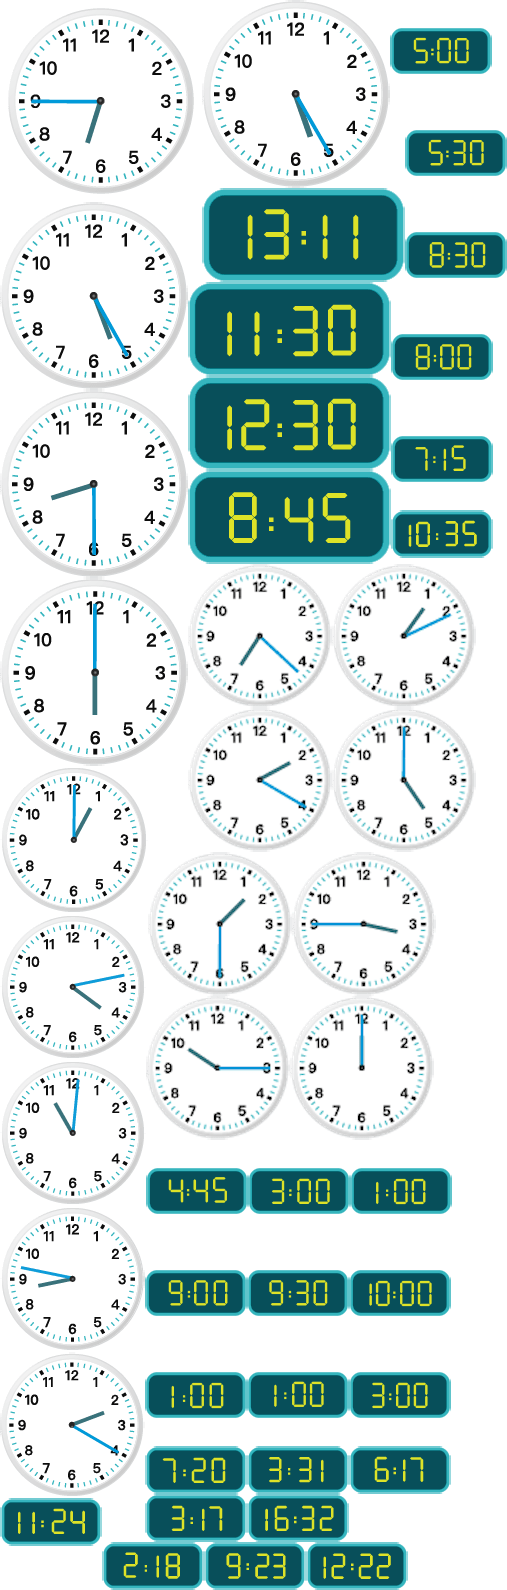 hight resolution of The Worksheet Telling Time to the Minute focuses on Analog and Digital:  24-Hour Clock